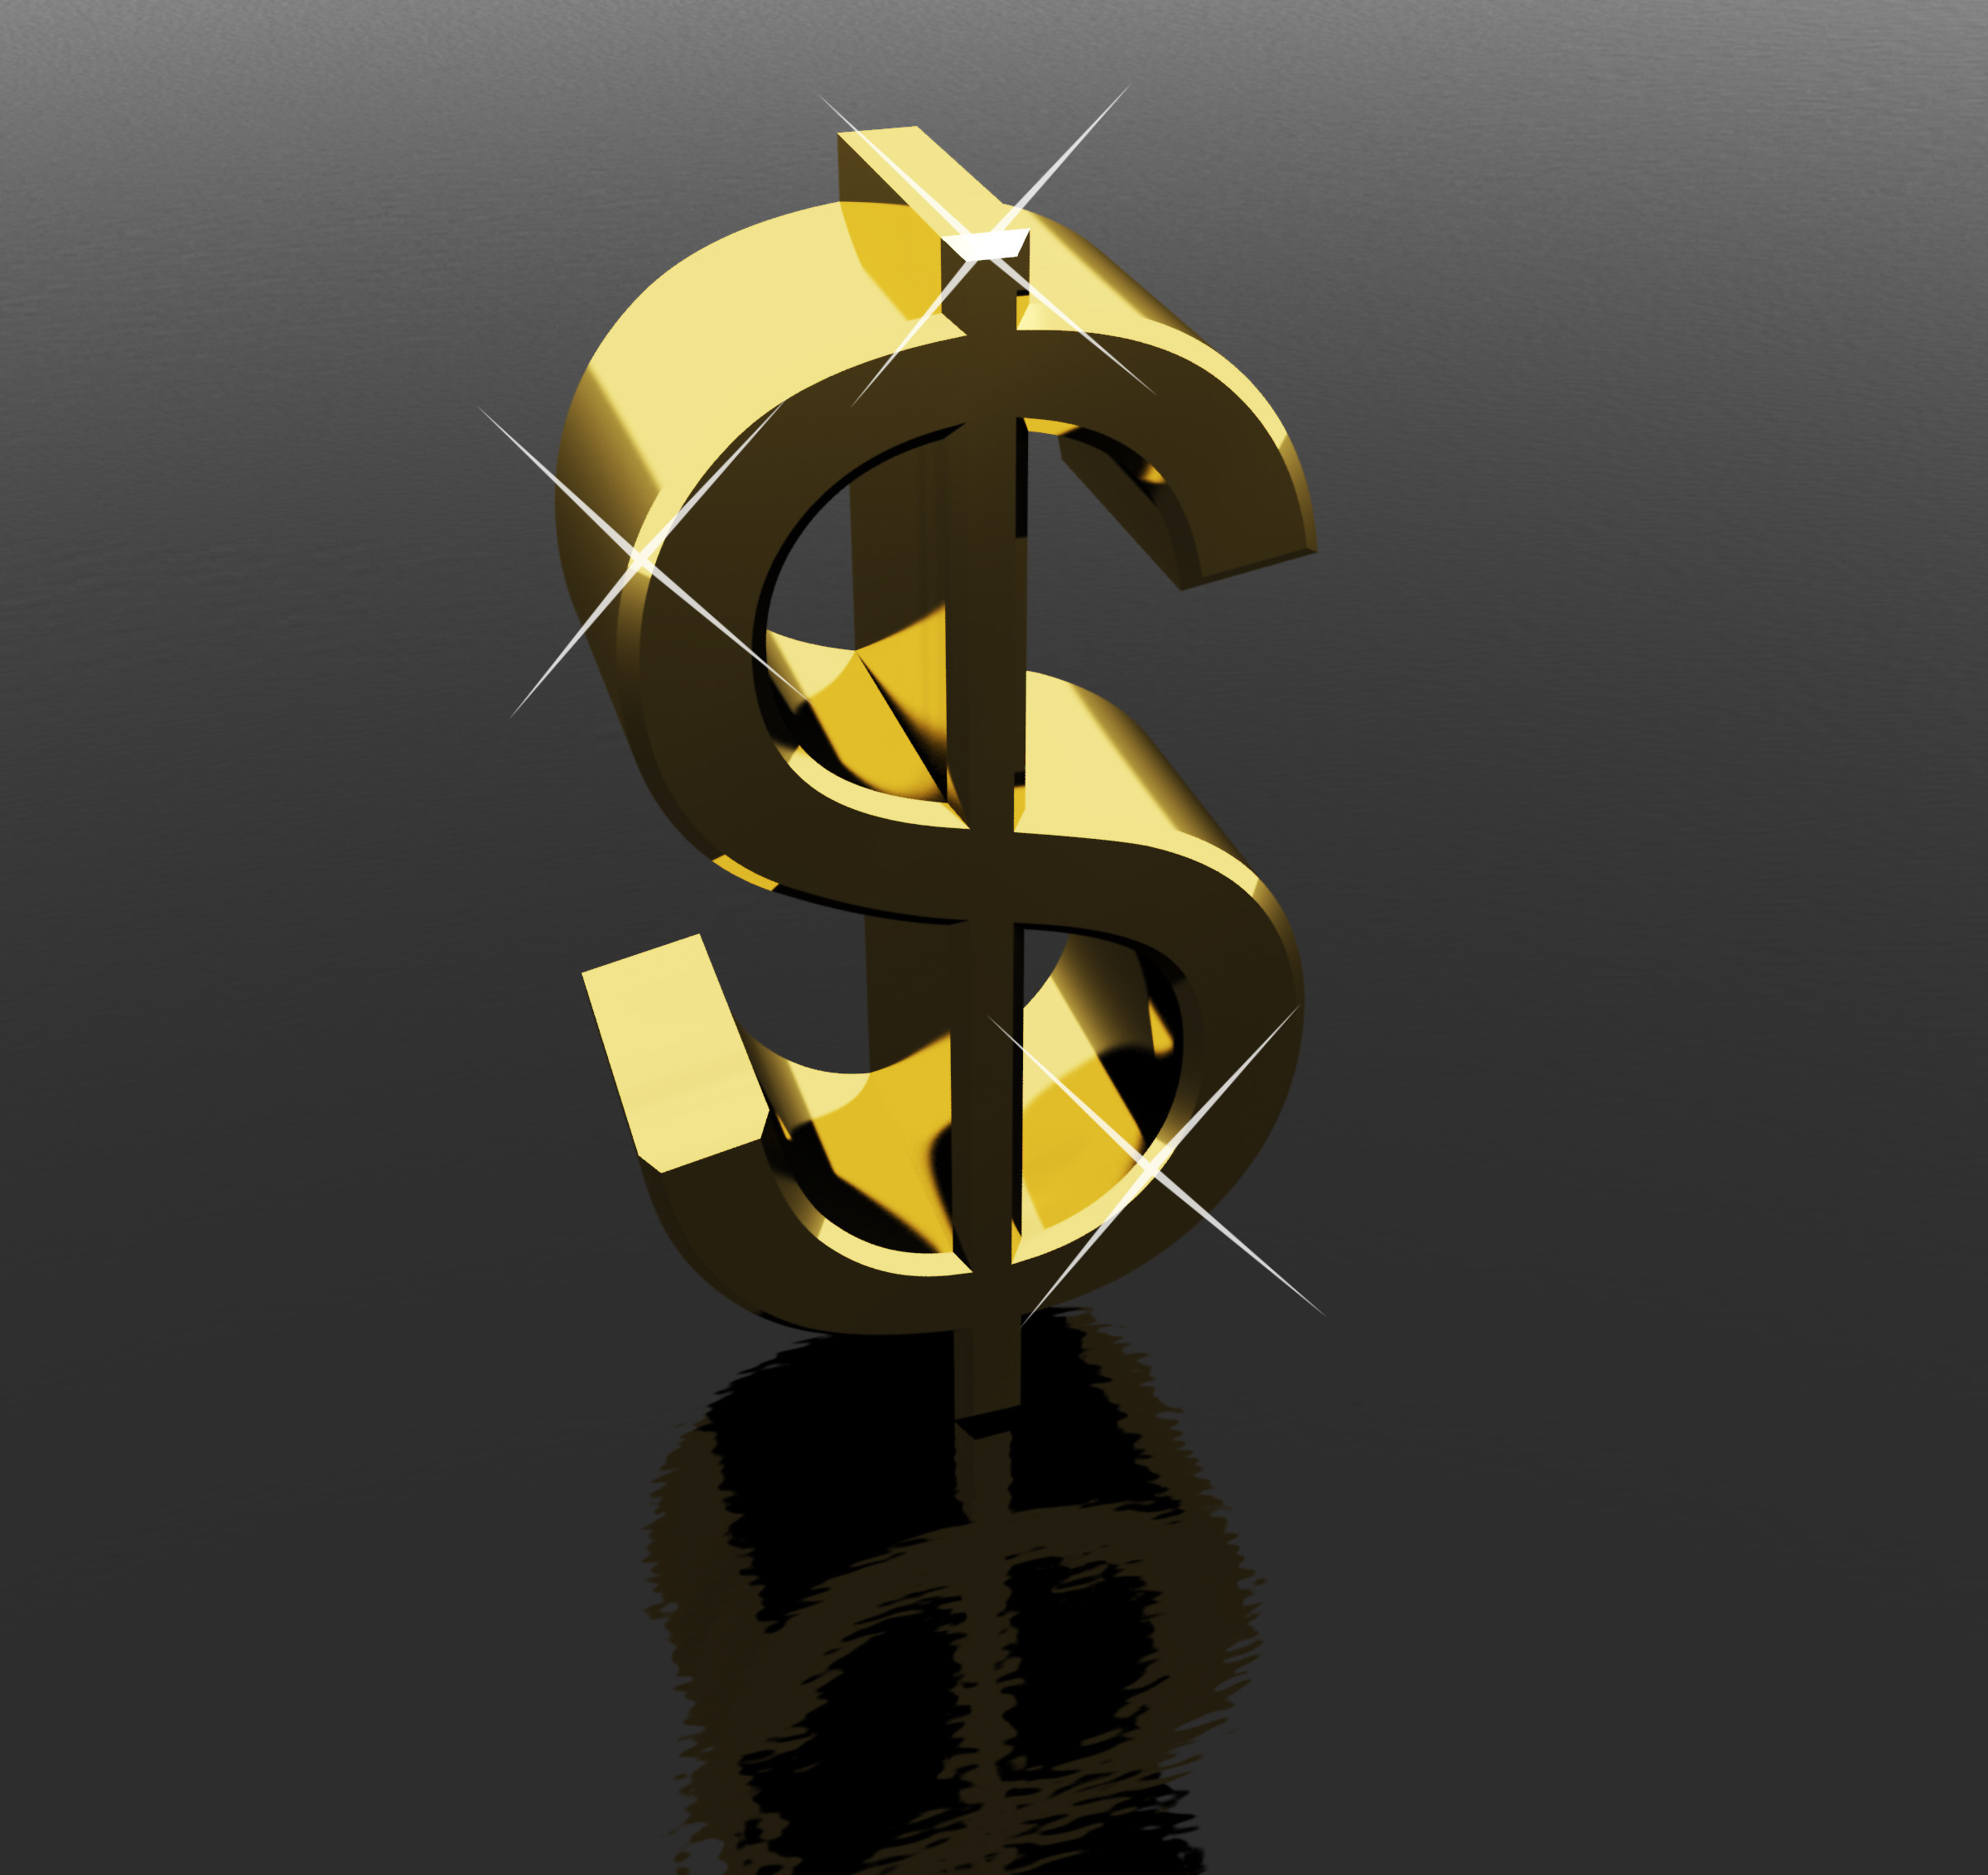 Dollar Sign As Symbol For Money Or Cash Aris Business